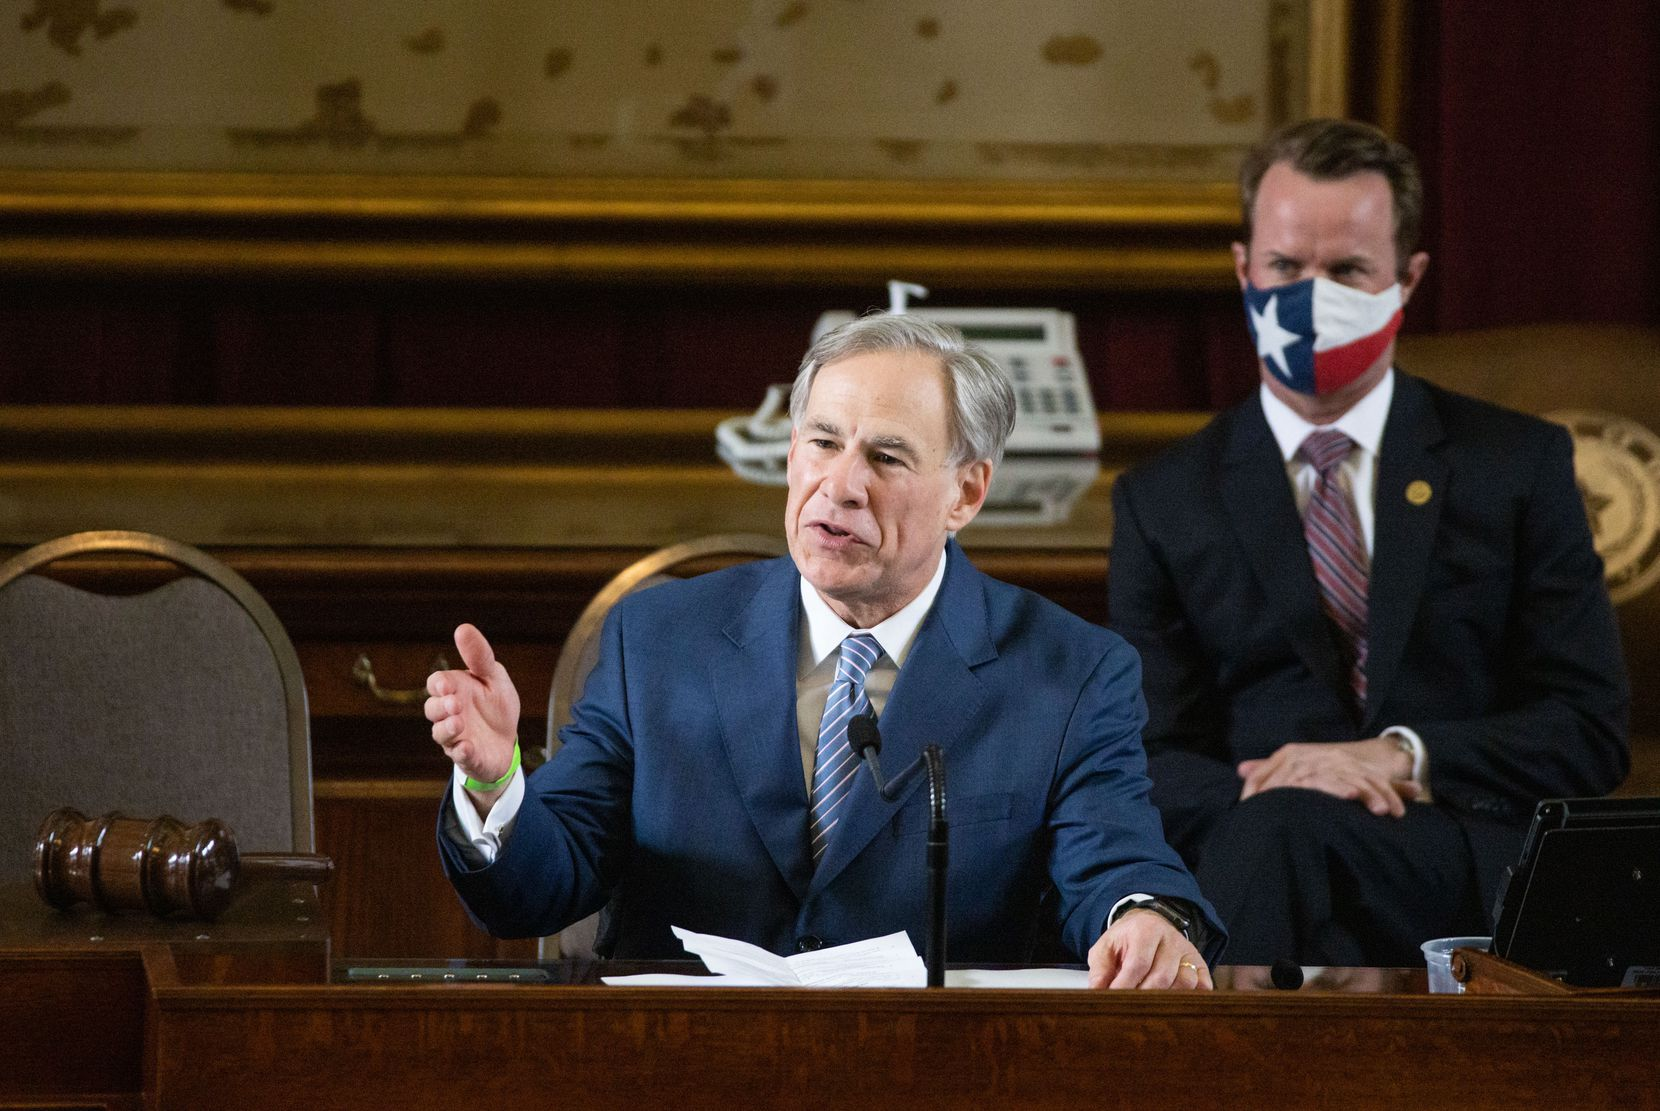 Texas Gov. Greg Abbott addressed state representatives during the House opening ceremony for the 87th Texas Legislature at the Capitol building in Austin on Jan. 12, 2021.